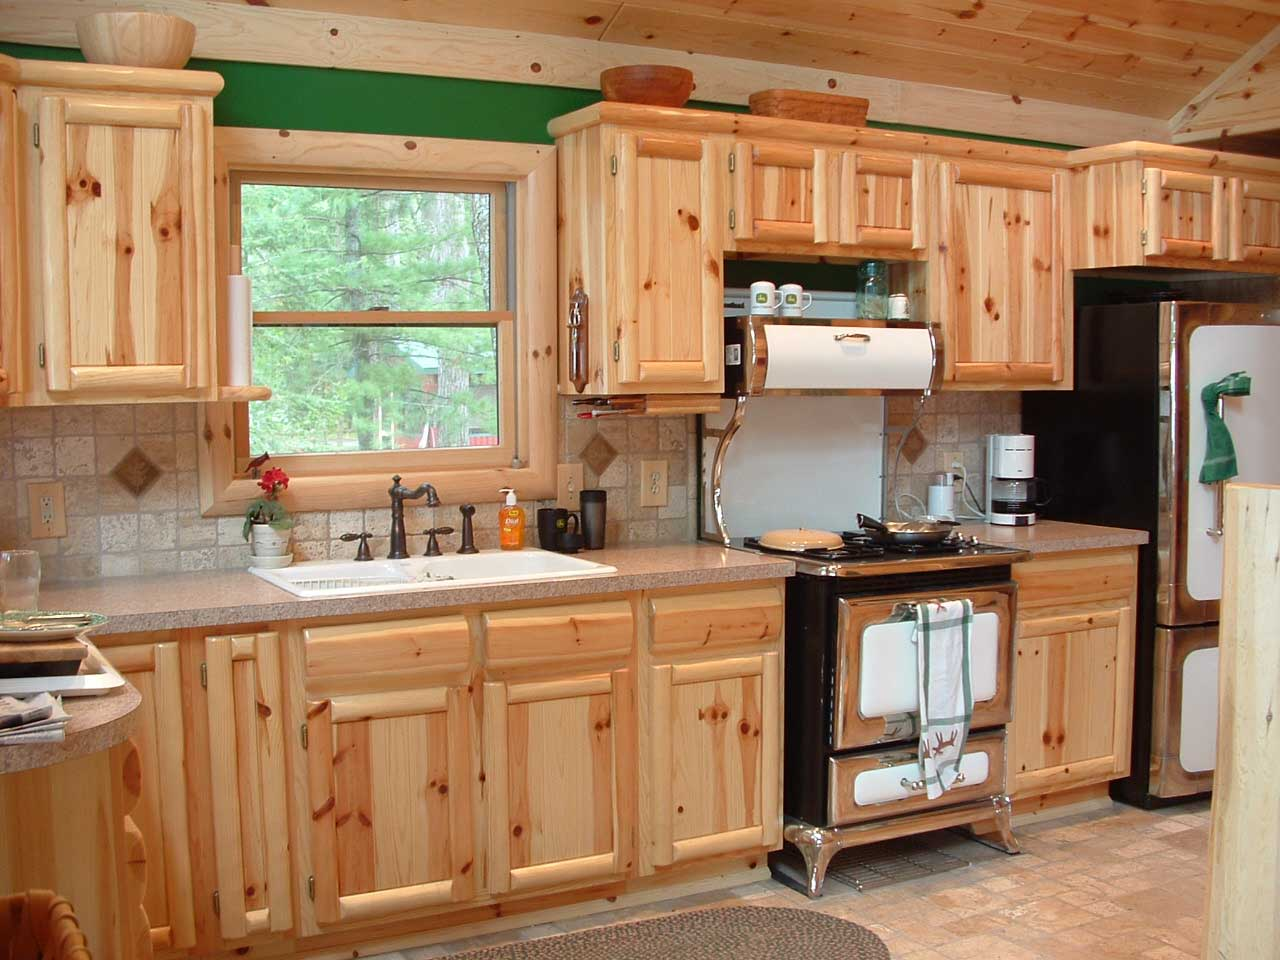 Photos of knotty pine kitchen cabinets 03webquality aghihed